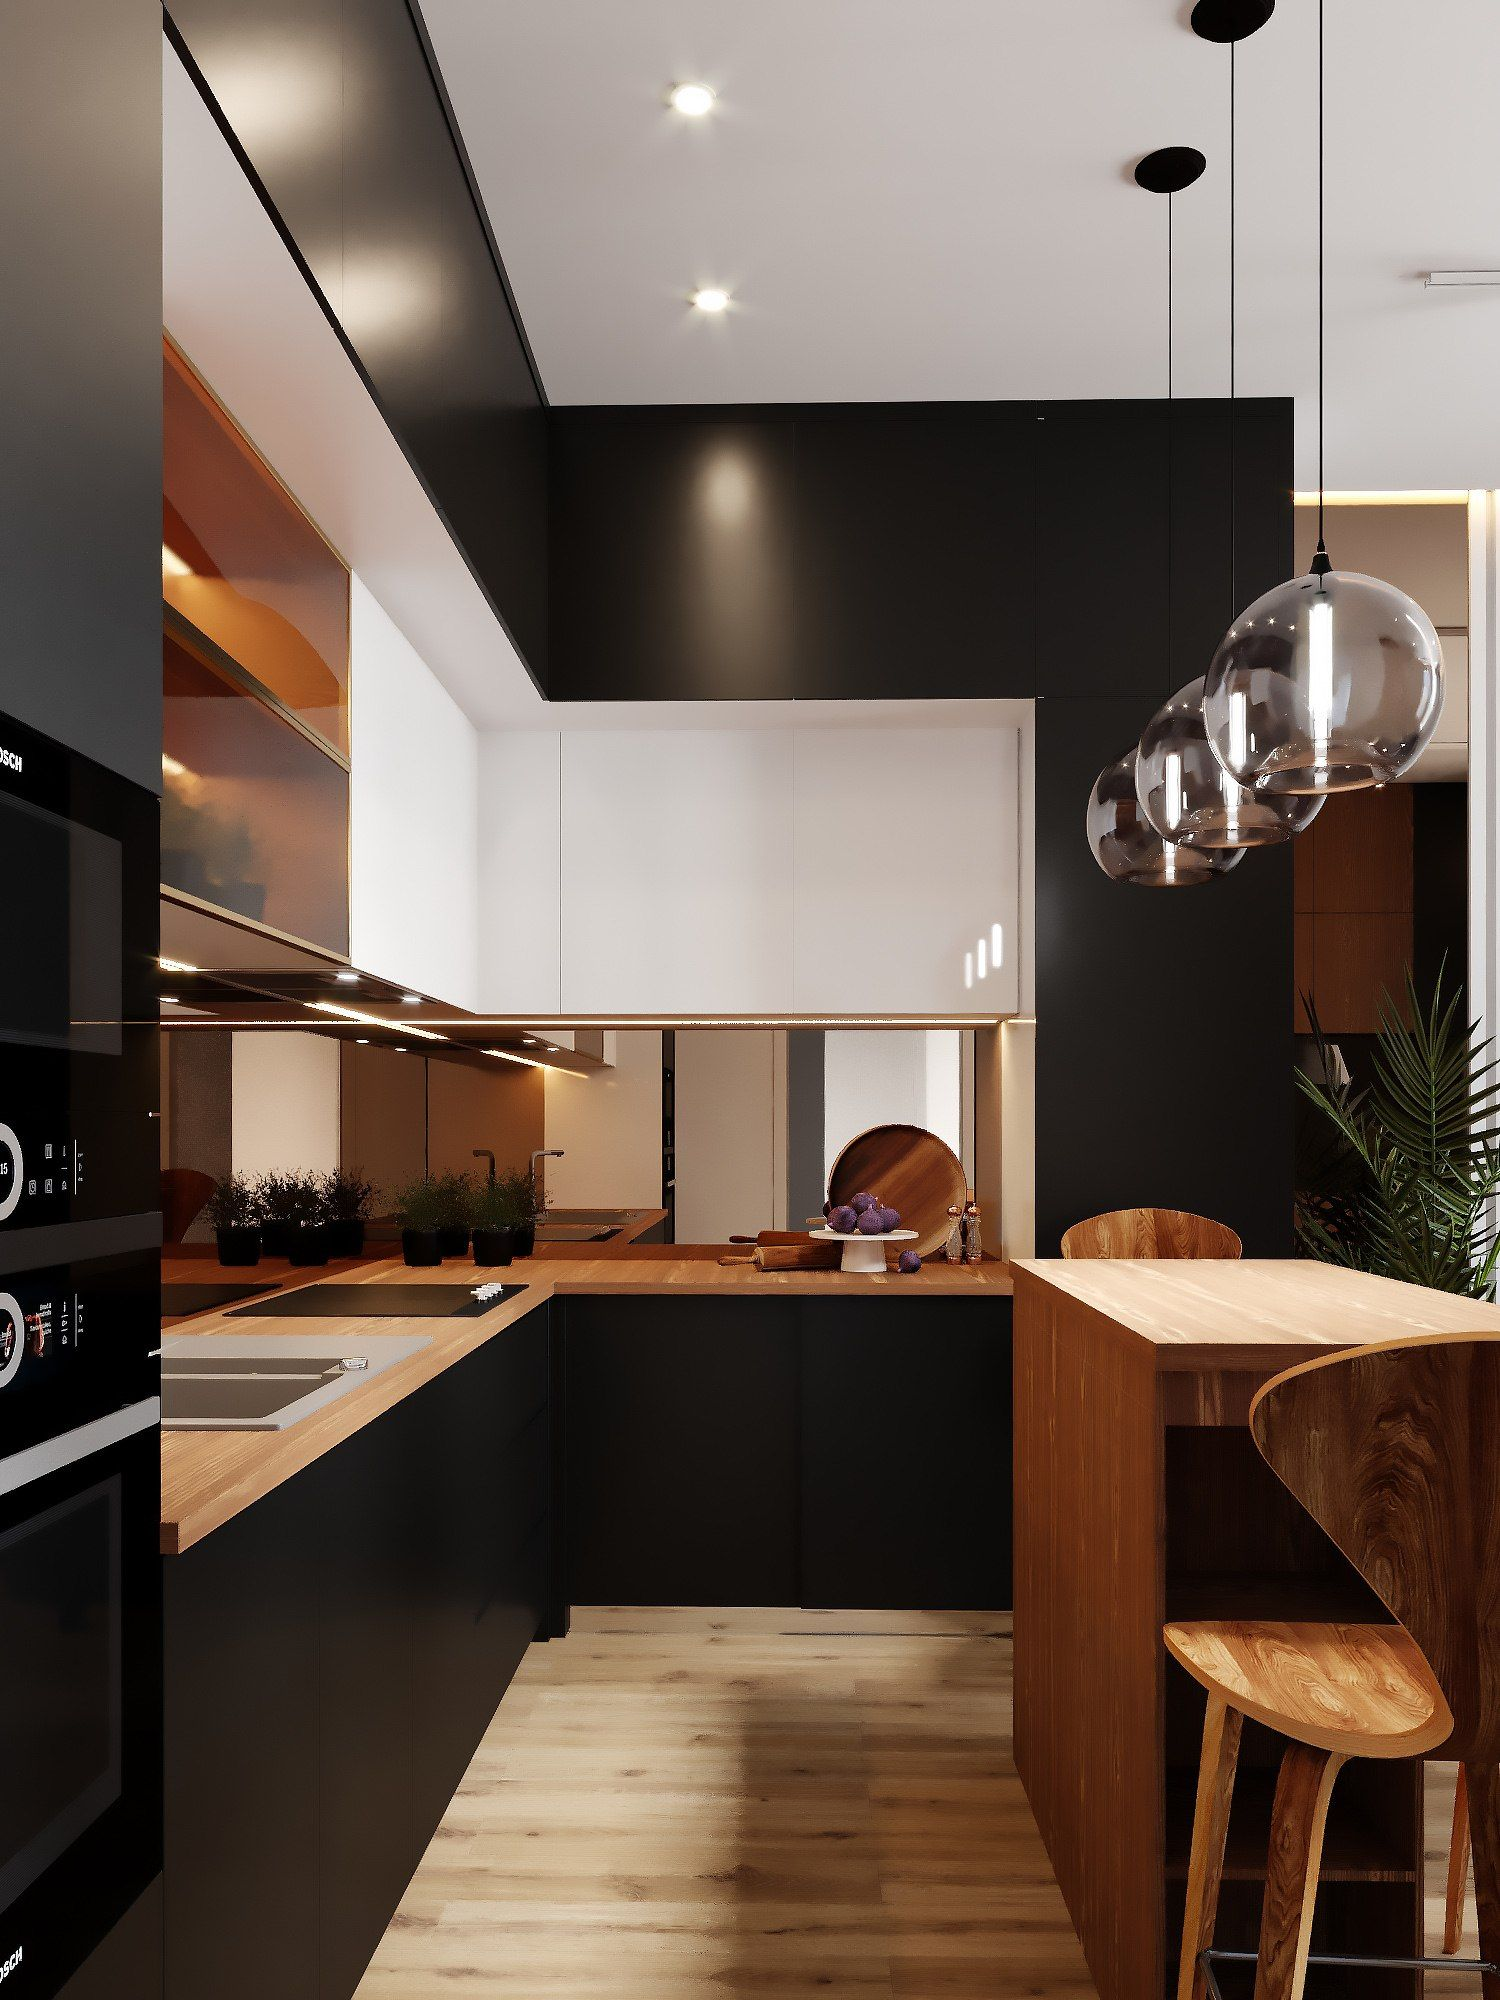 Asian kitchen kitchen white kitchen sets black kitchens cool kitchens kitchen